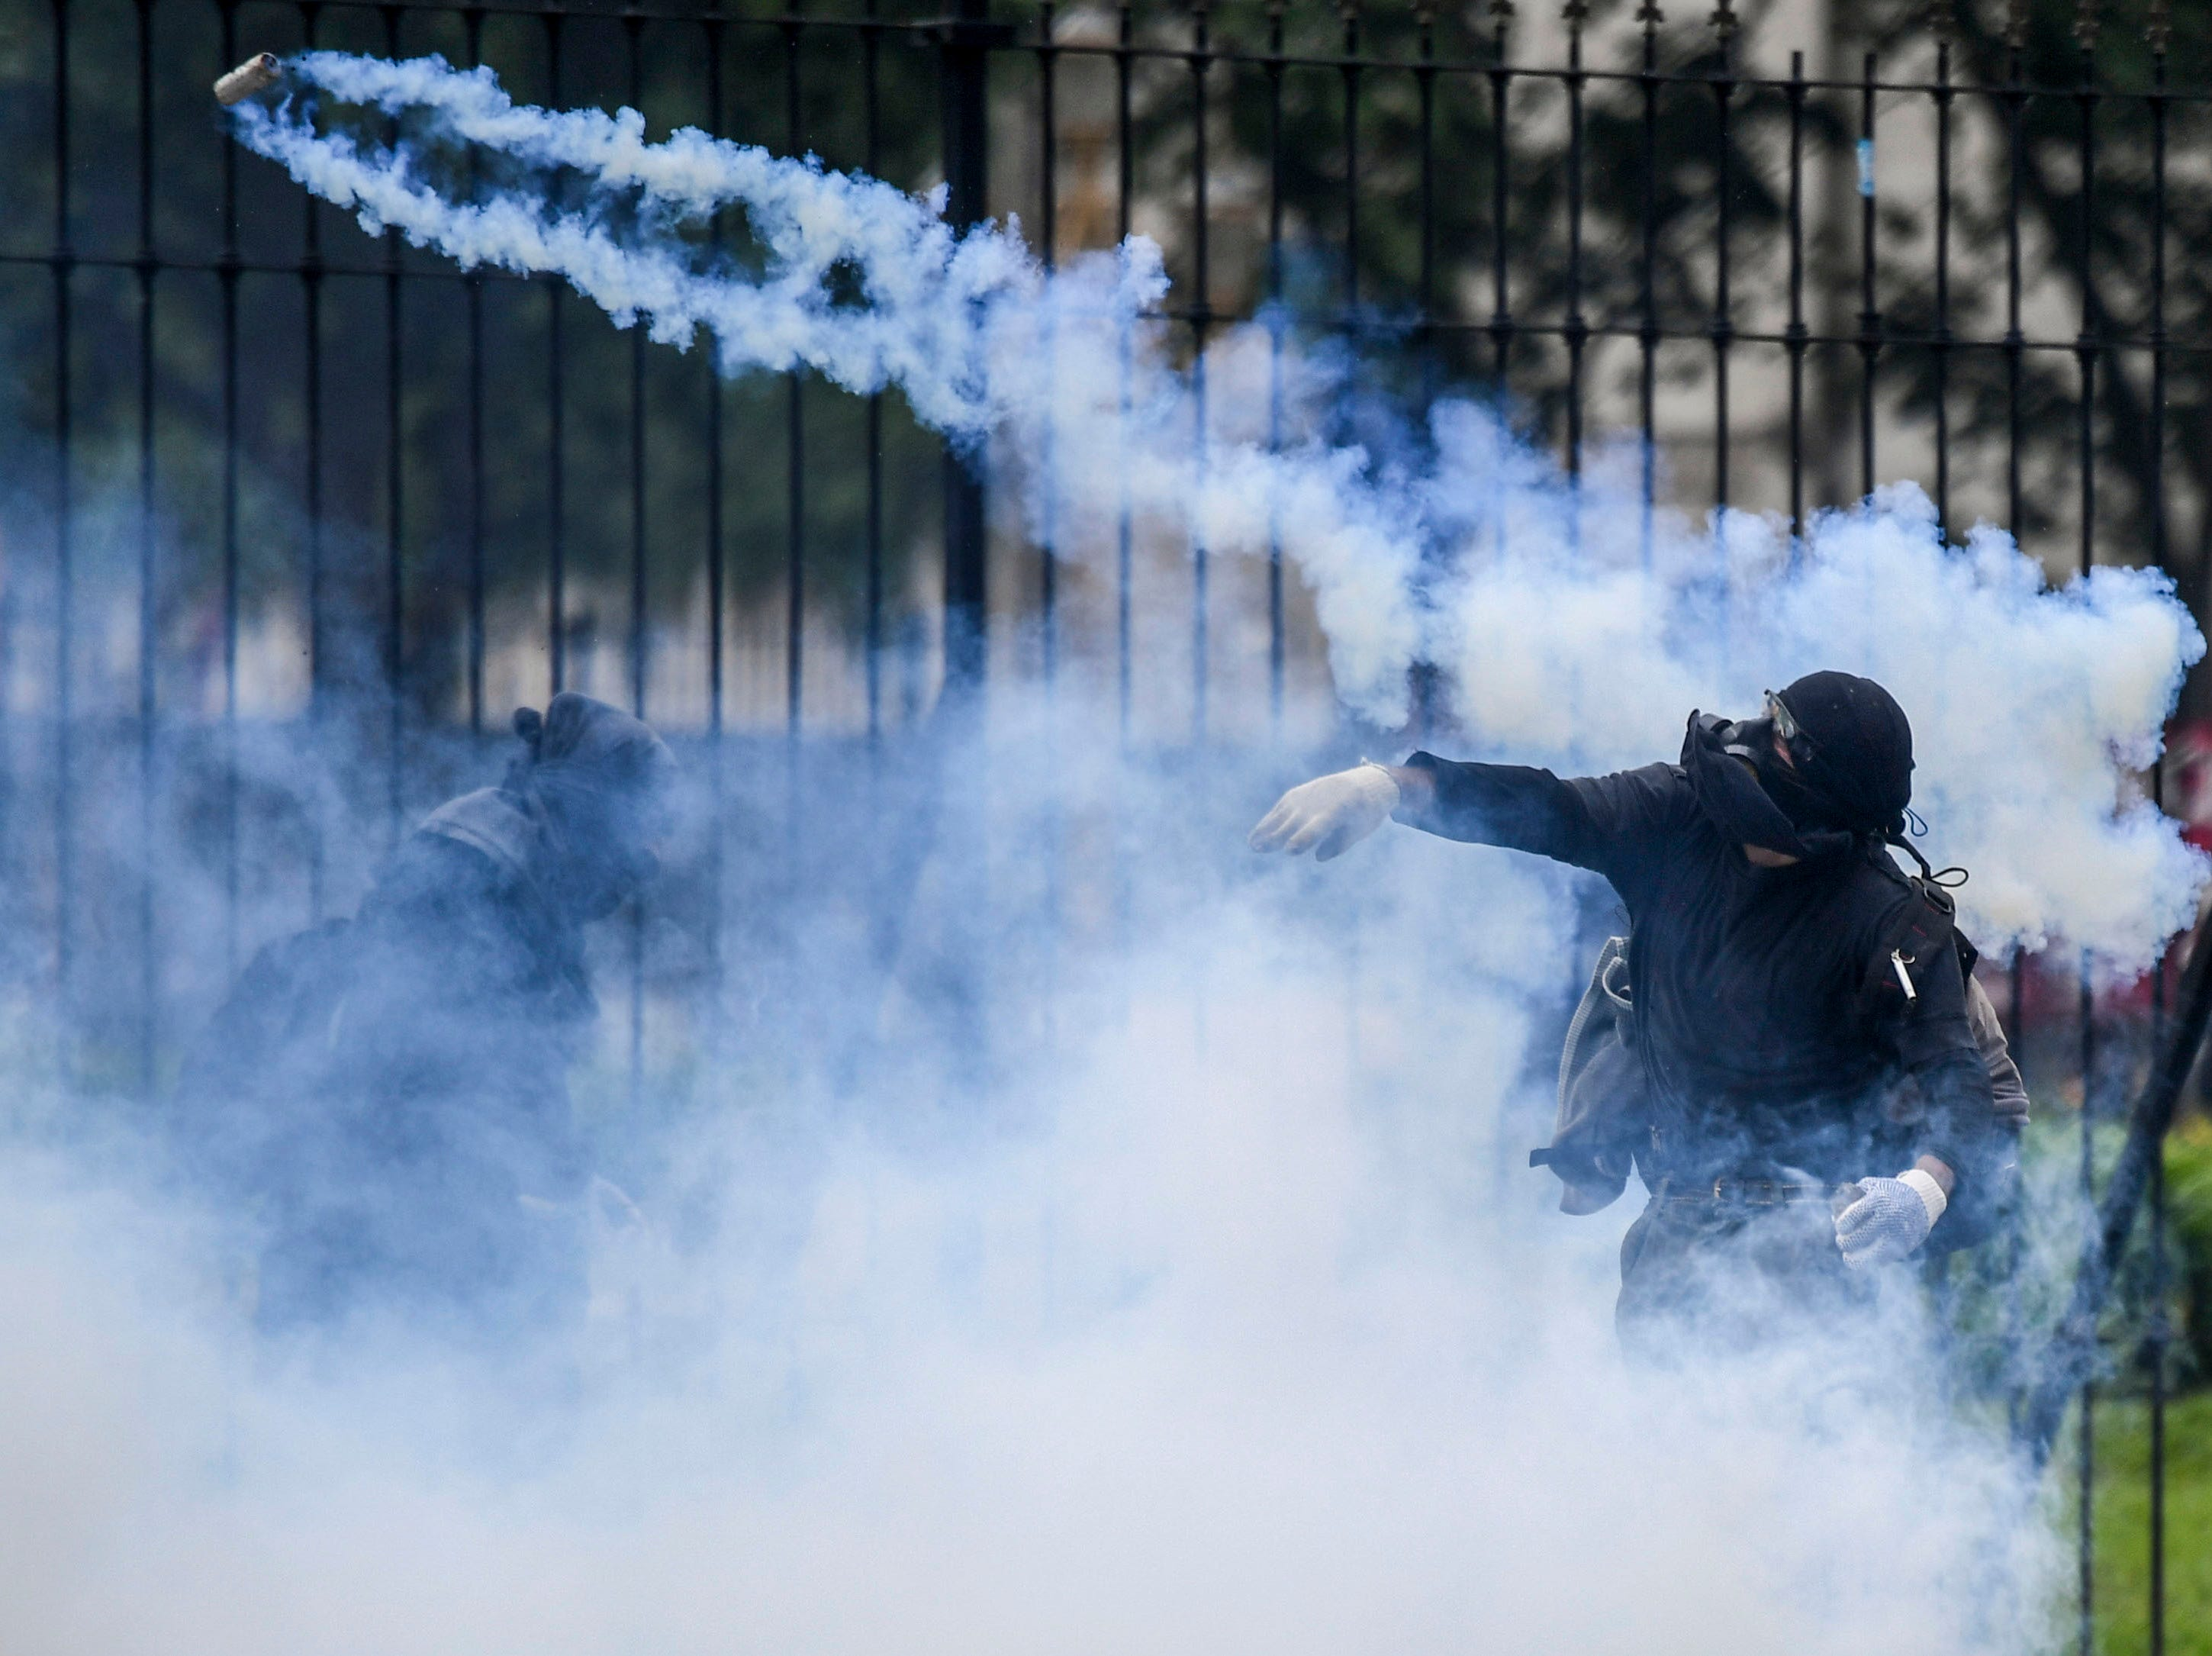 A demonstrator throws a tear gas canister back at riot police outside the Congress while Argentine Deputies began the discussion on the governments austere 2019 budget, in Buenos Aires on October 24, 2018. - Argentinian Deputies Chamber carries out the first debate of the 2019 budget, with the purpose of achieving the fiscal balance agreed with the International Monetary Fund (IMF), but rejected by unions and social movements that called protest demonstrations.